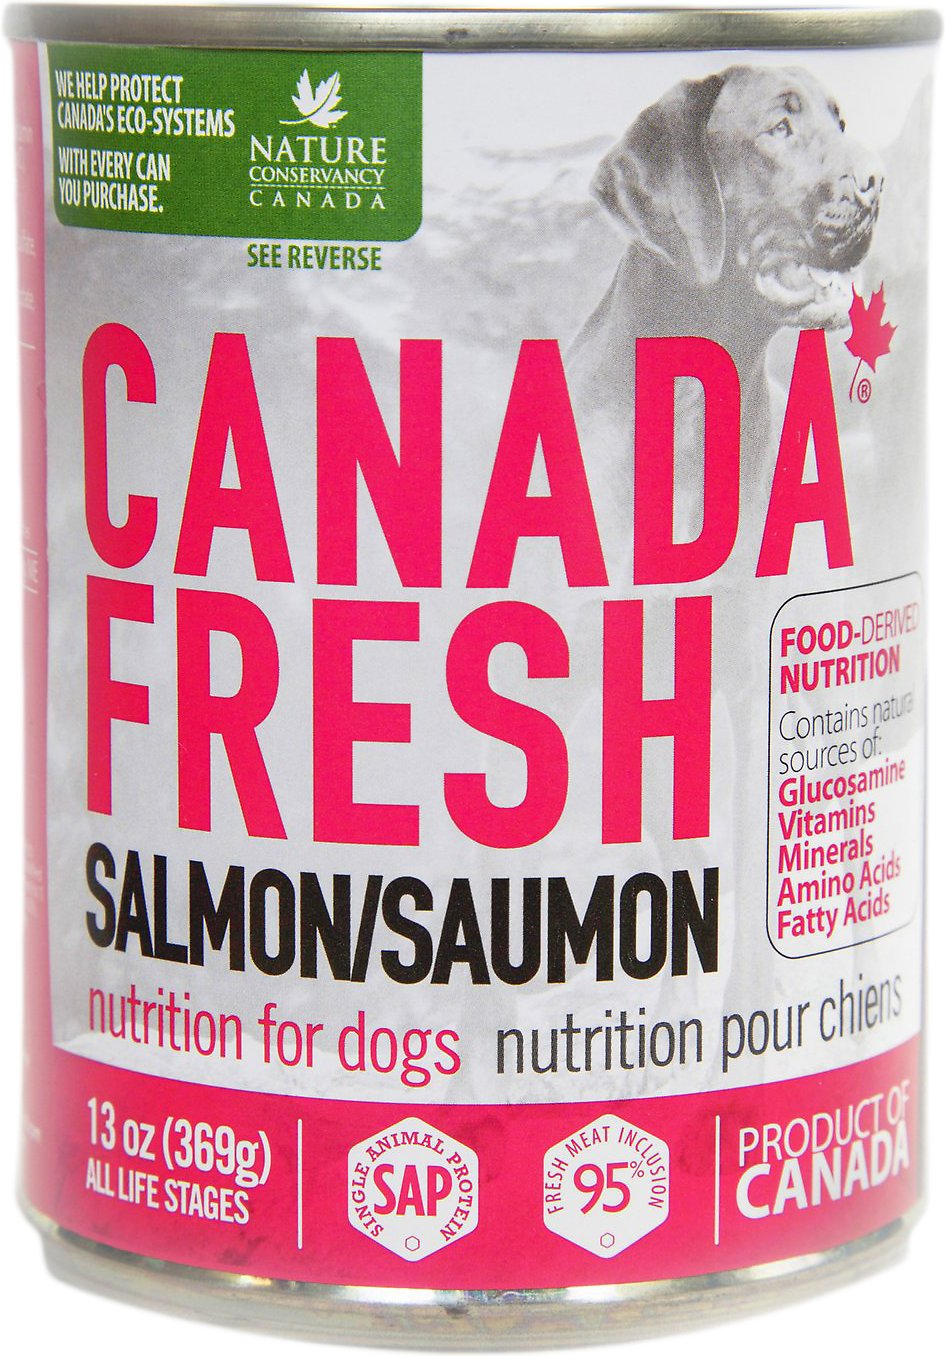 Canada fresh salmon canned dog food 13 oz case of 12 for Raw fish for dogs